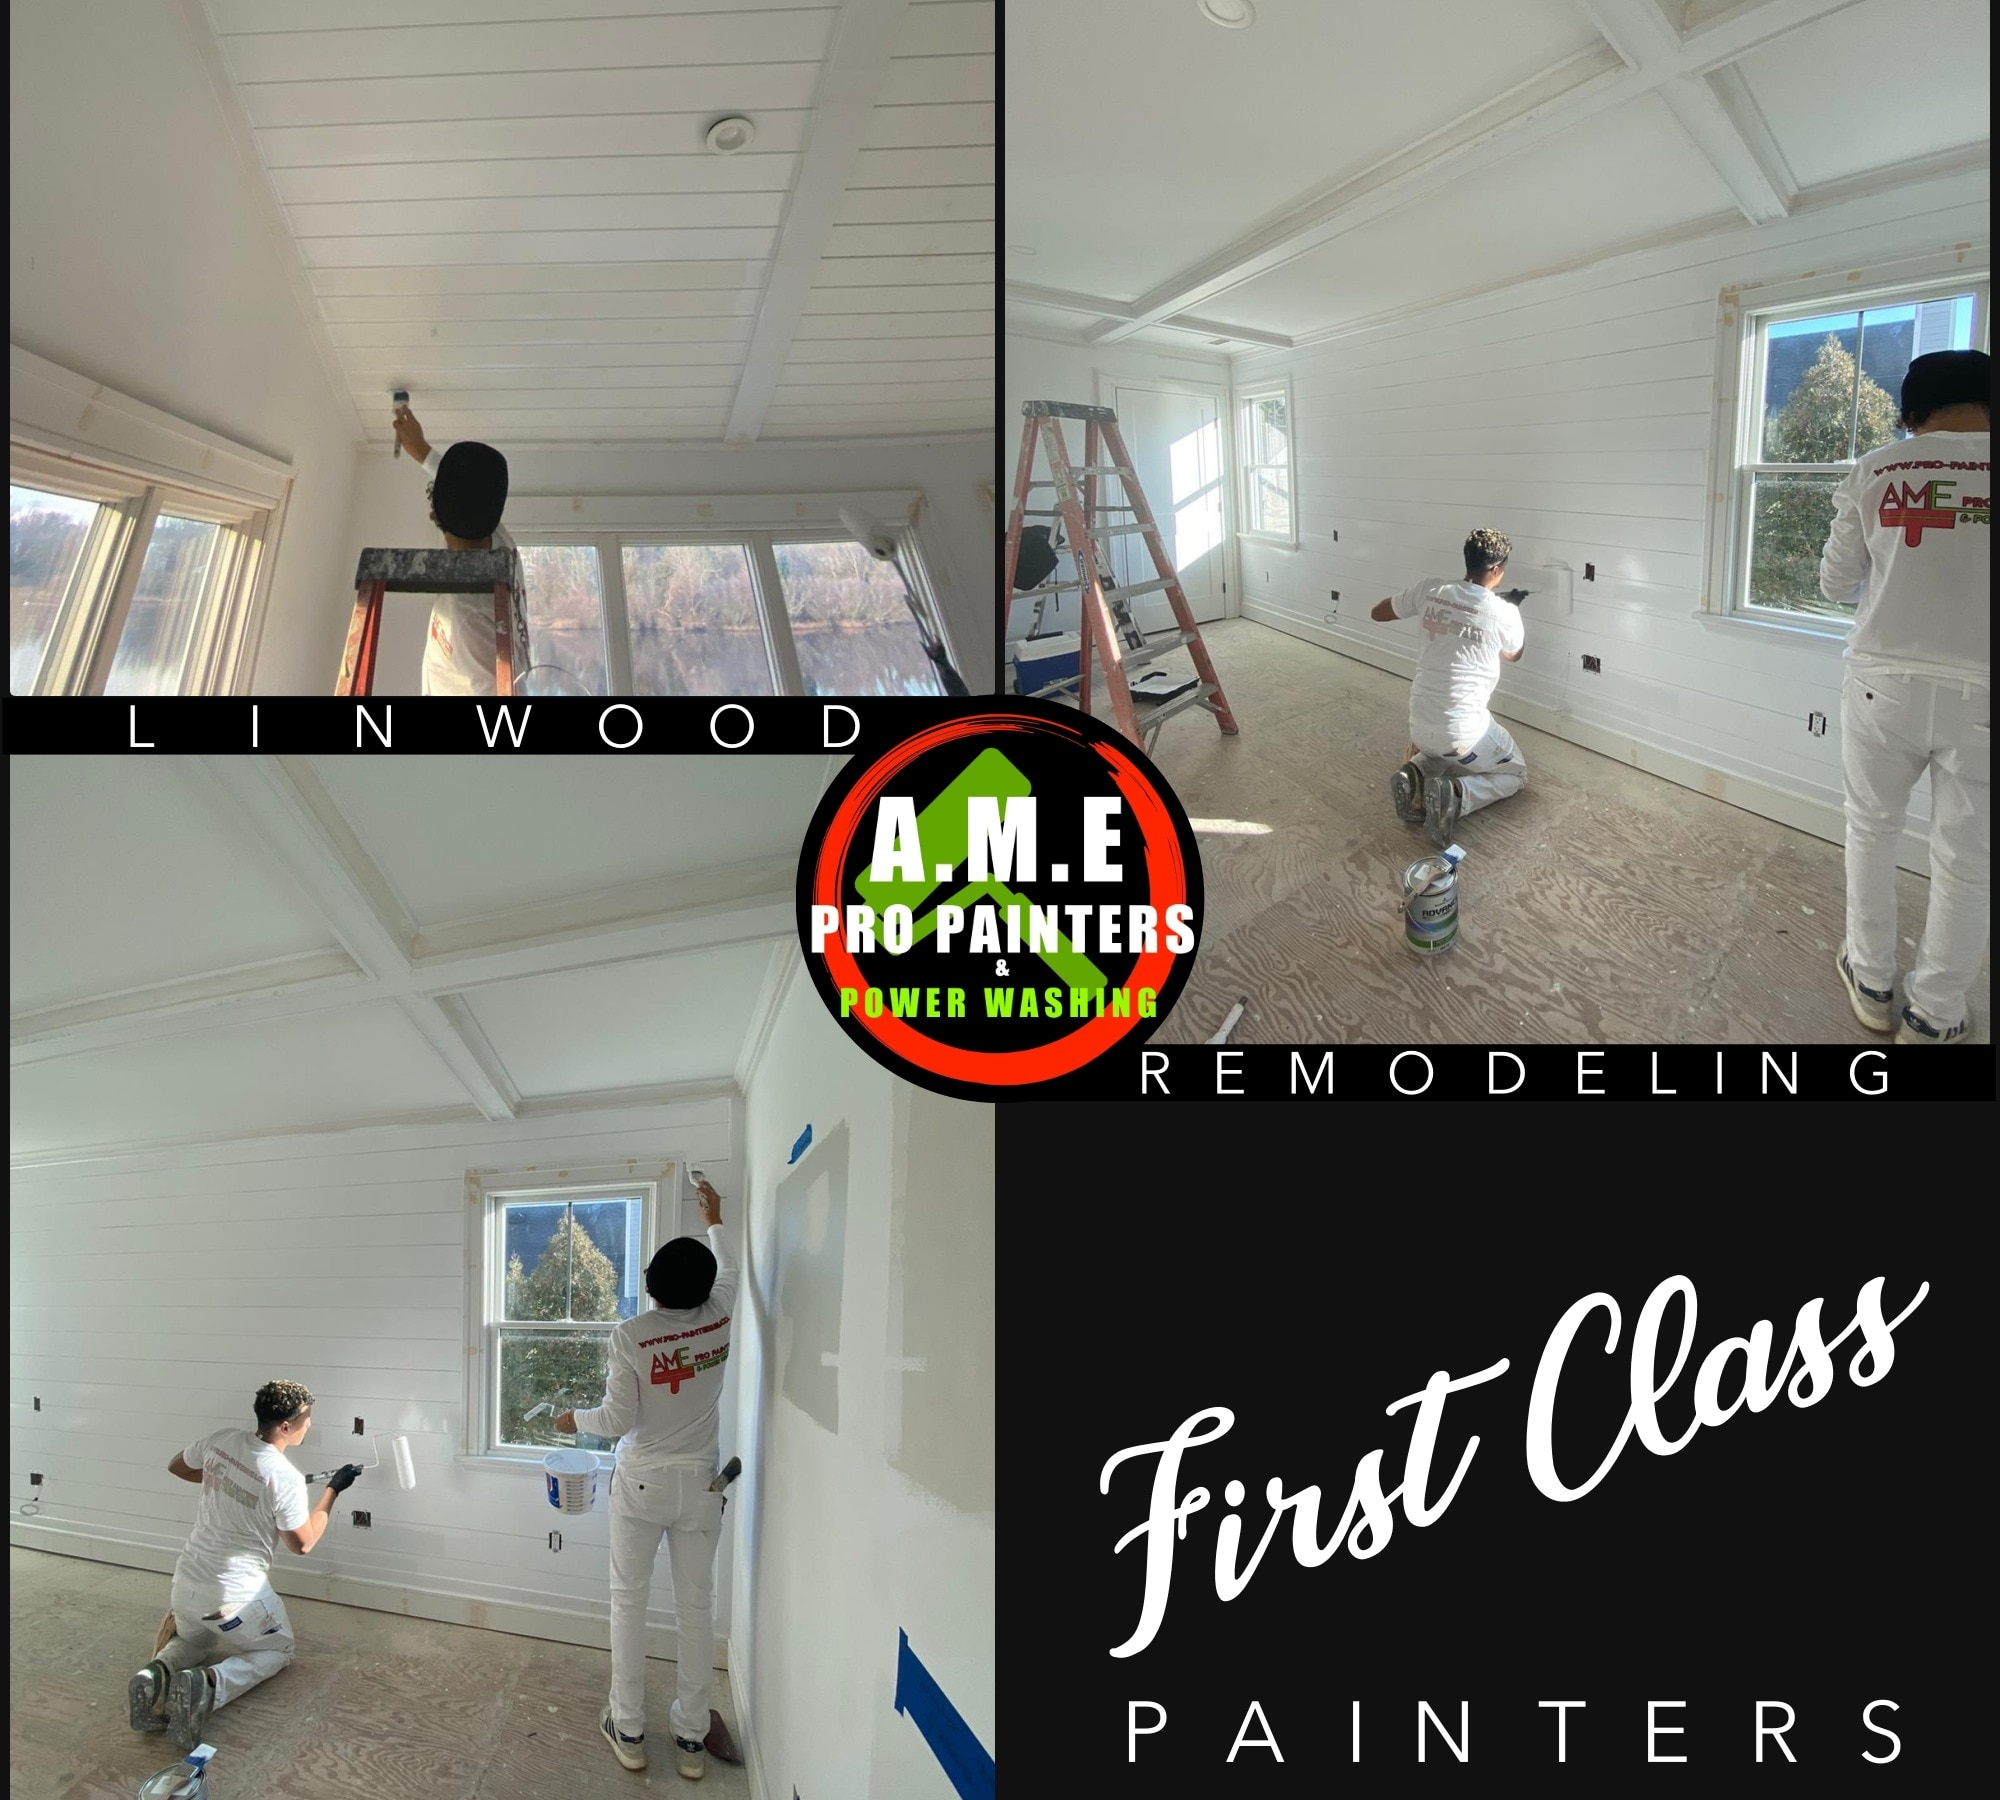 Second floor remodeling - Quality House Painting - Linwood NJ